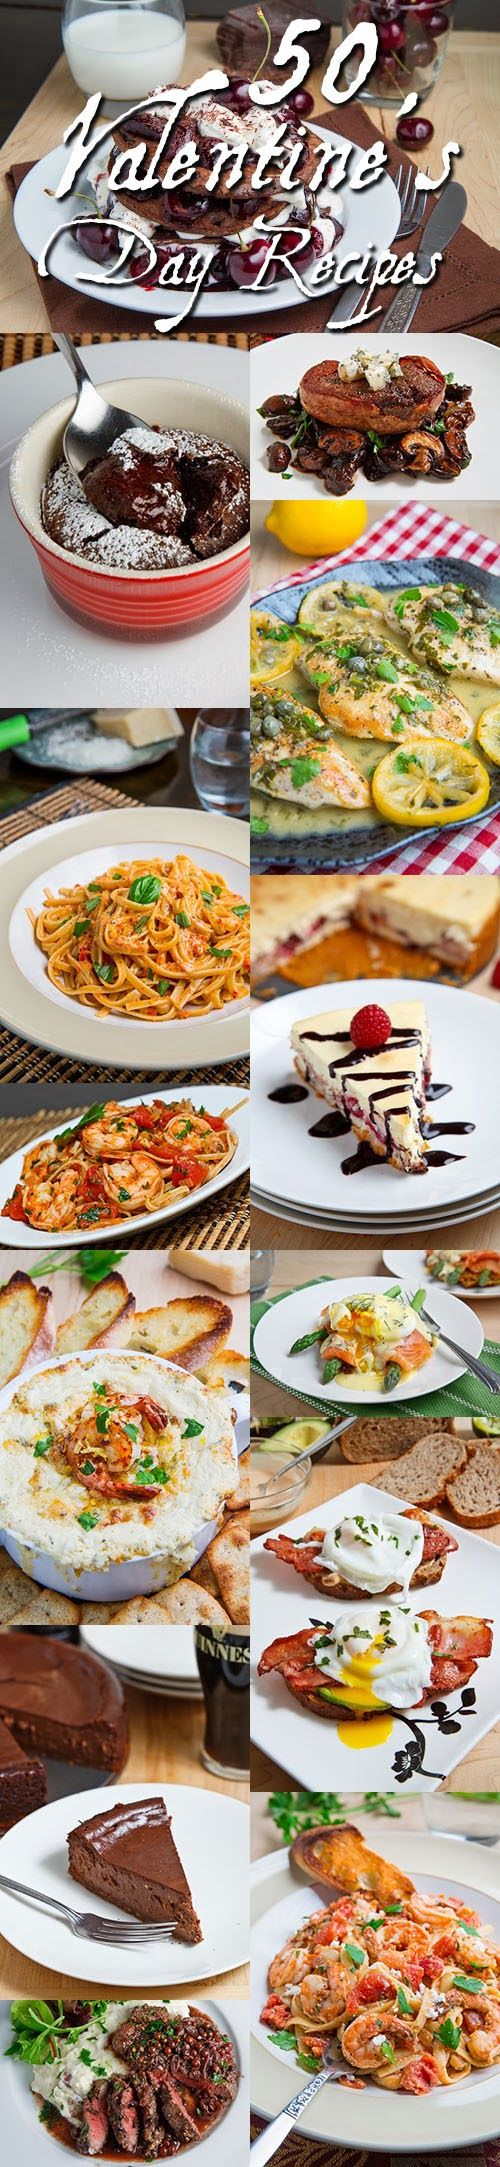 50 Valentine's Day Recipes